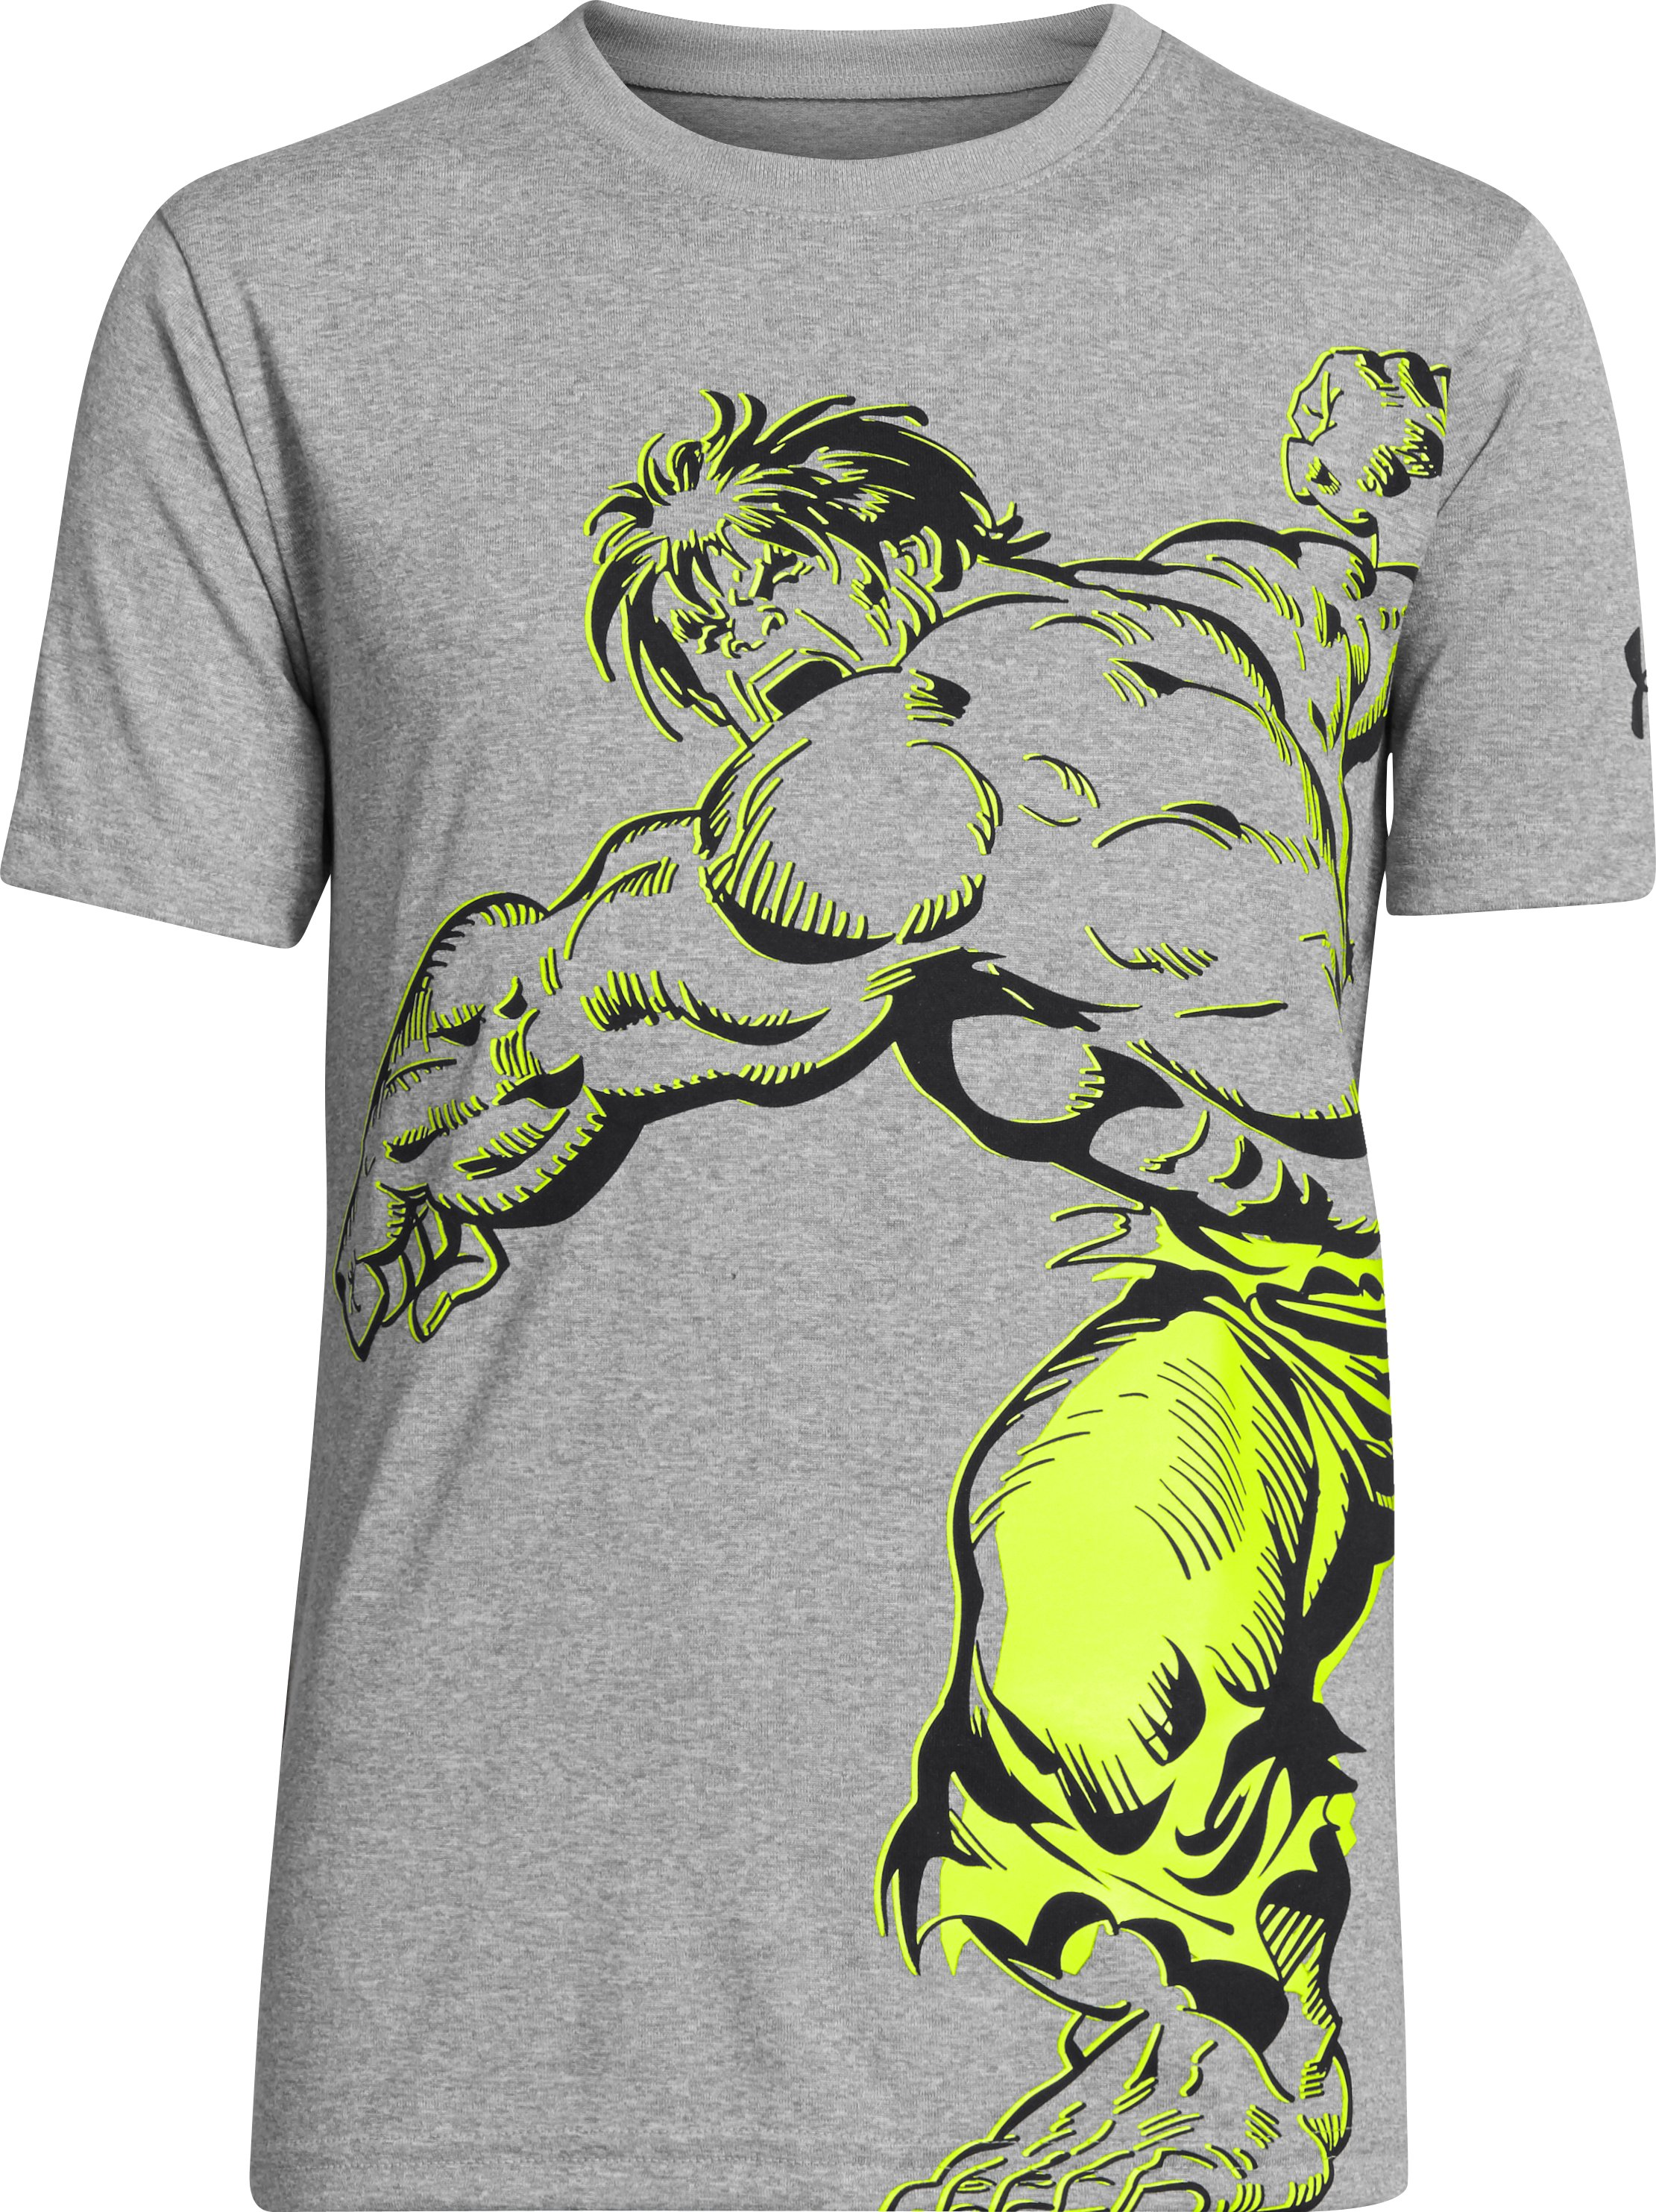 Boys' Under Armour® Alter Ego Hulk Action T-Shirt, True Gray Heather